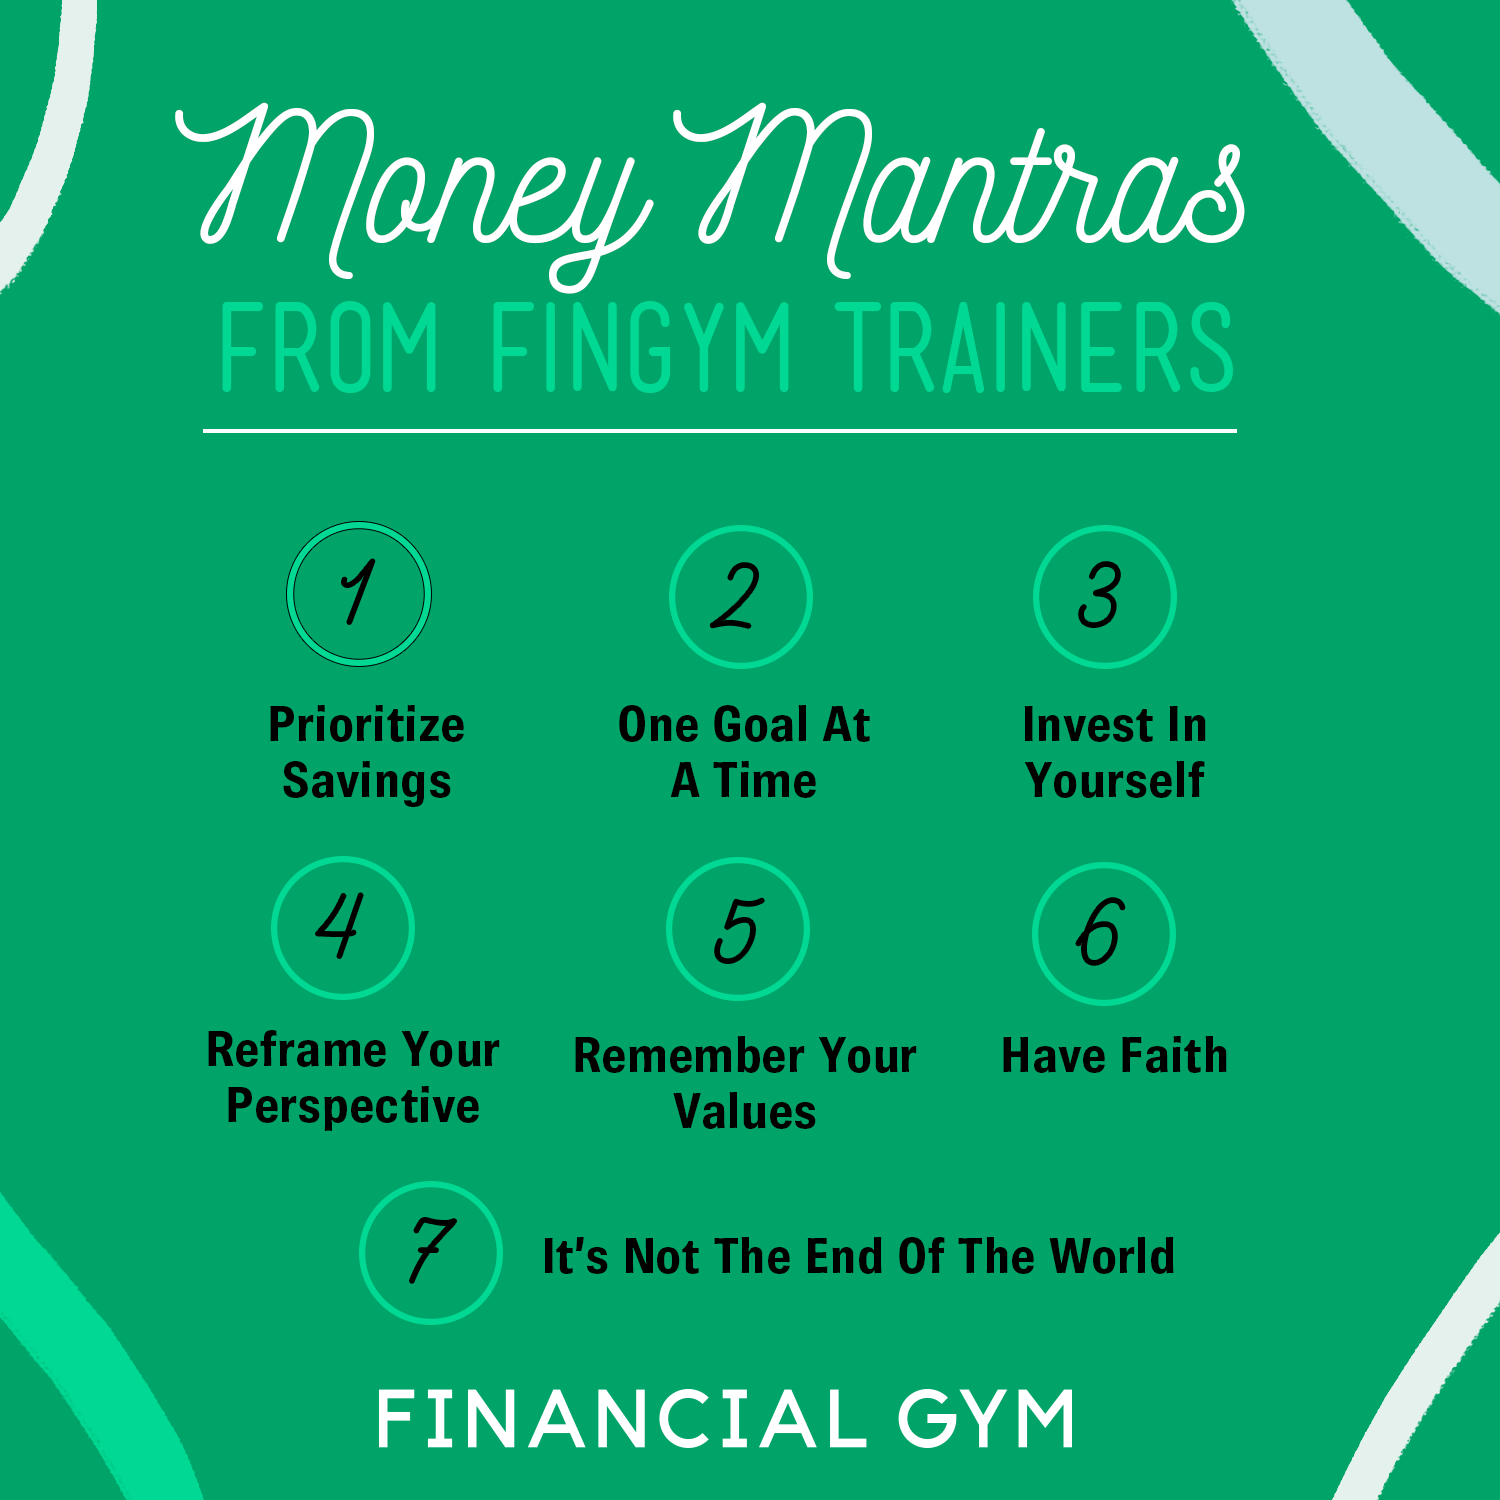 your money mantra quotes from the financial gym trainers the